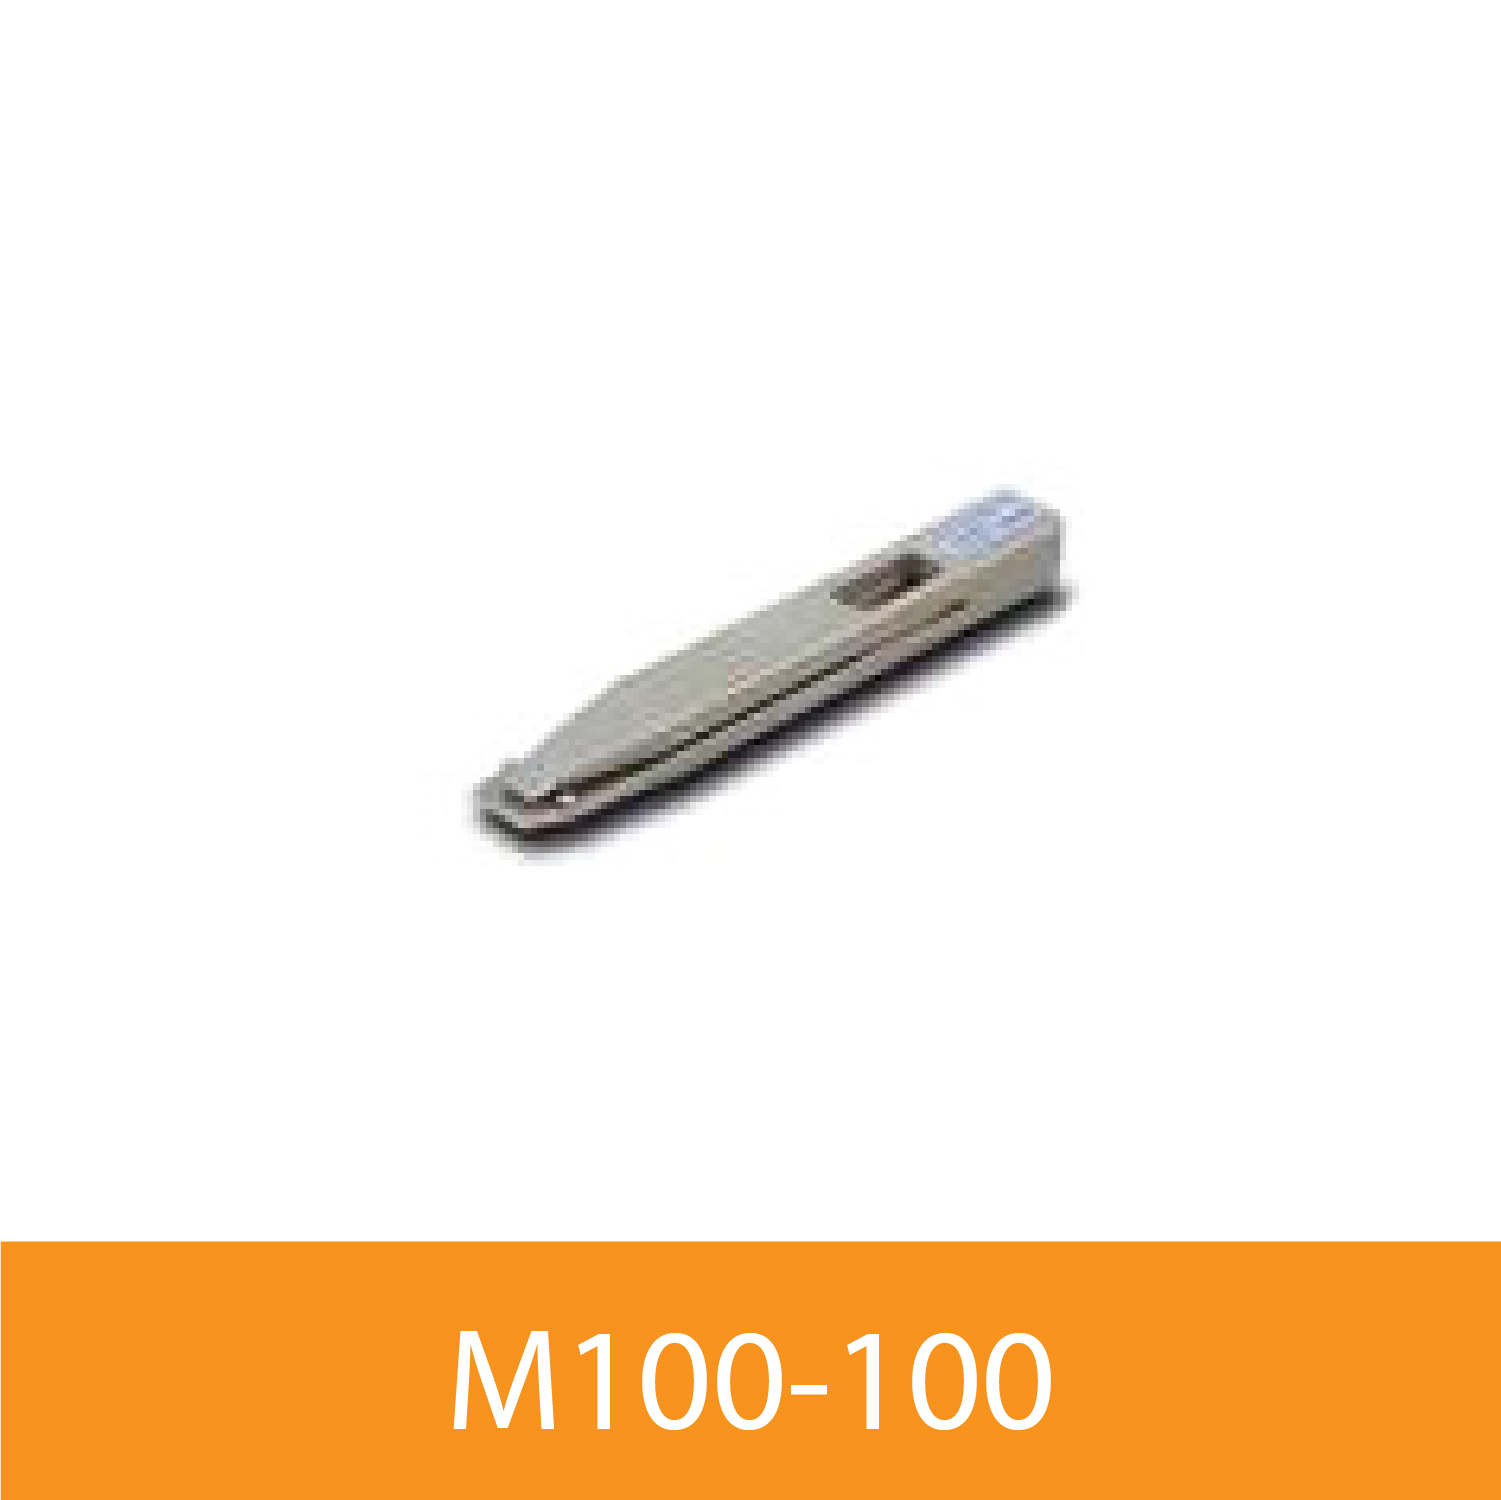 Wafer Tweezer (M100-100)